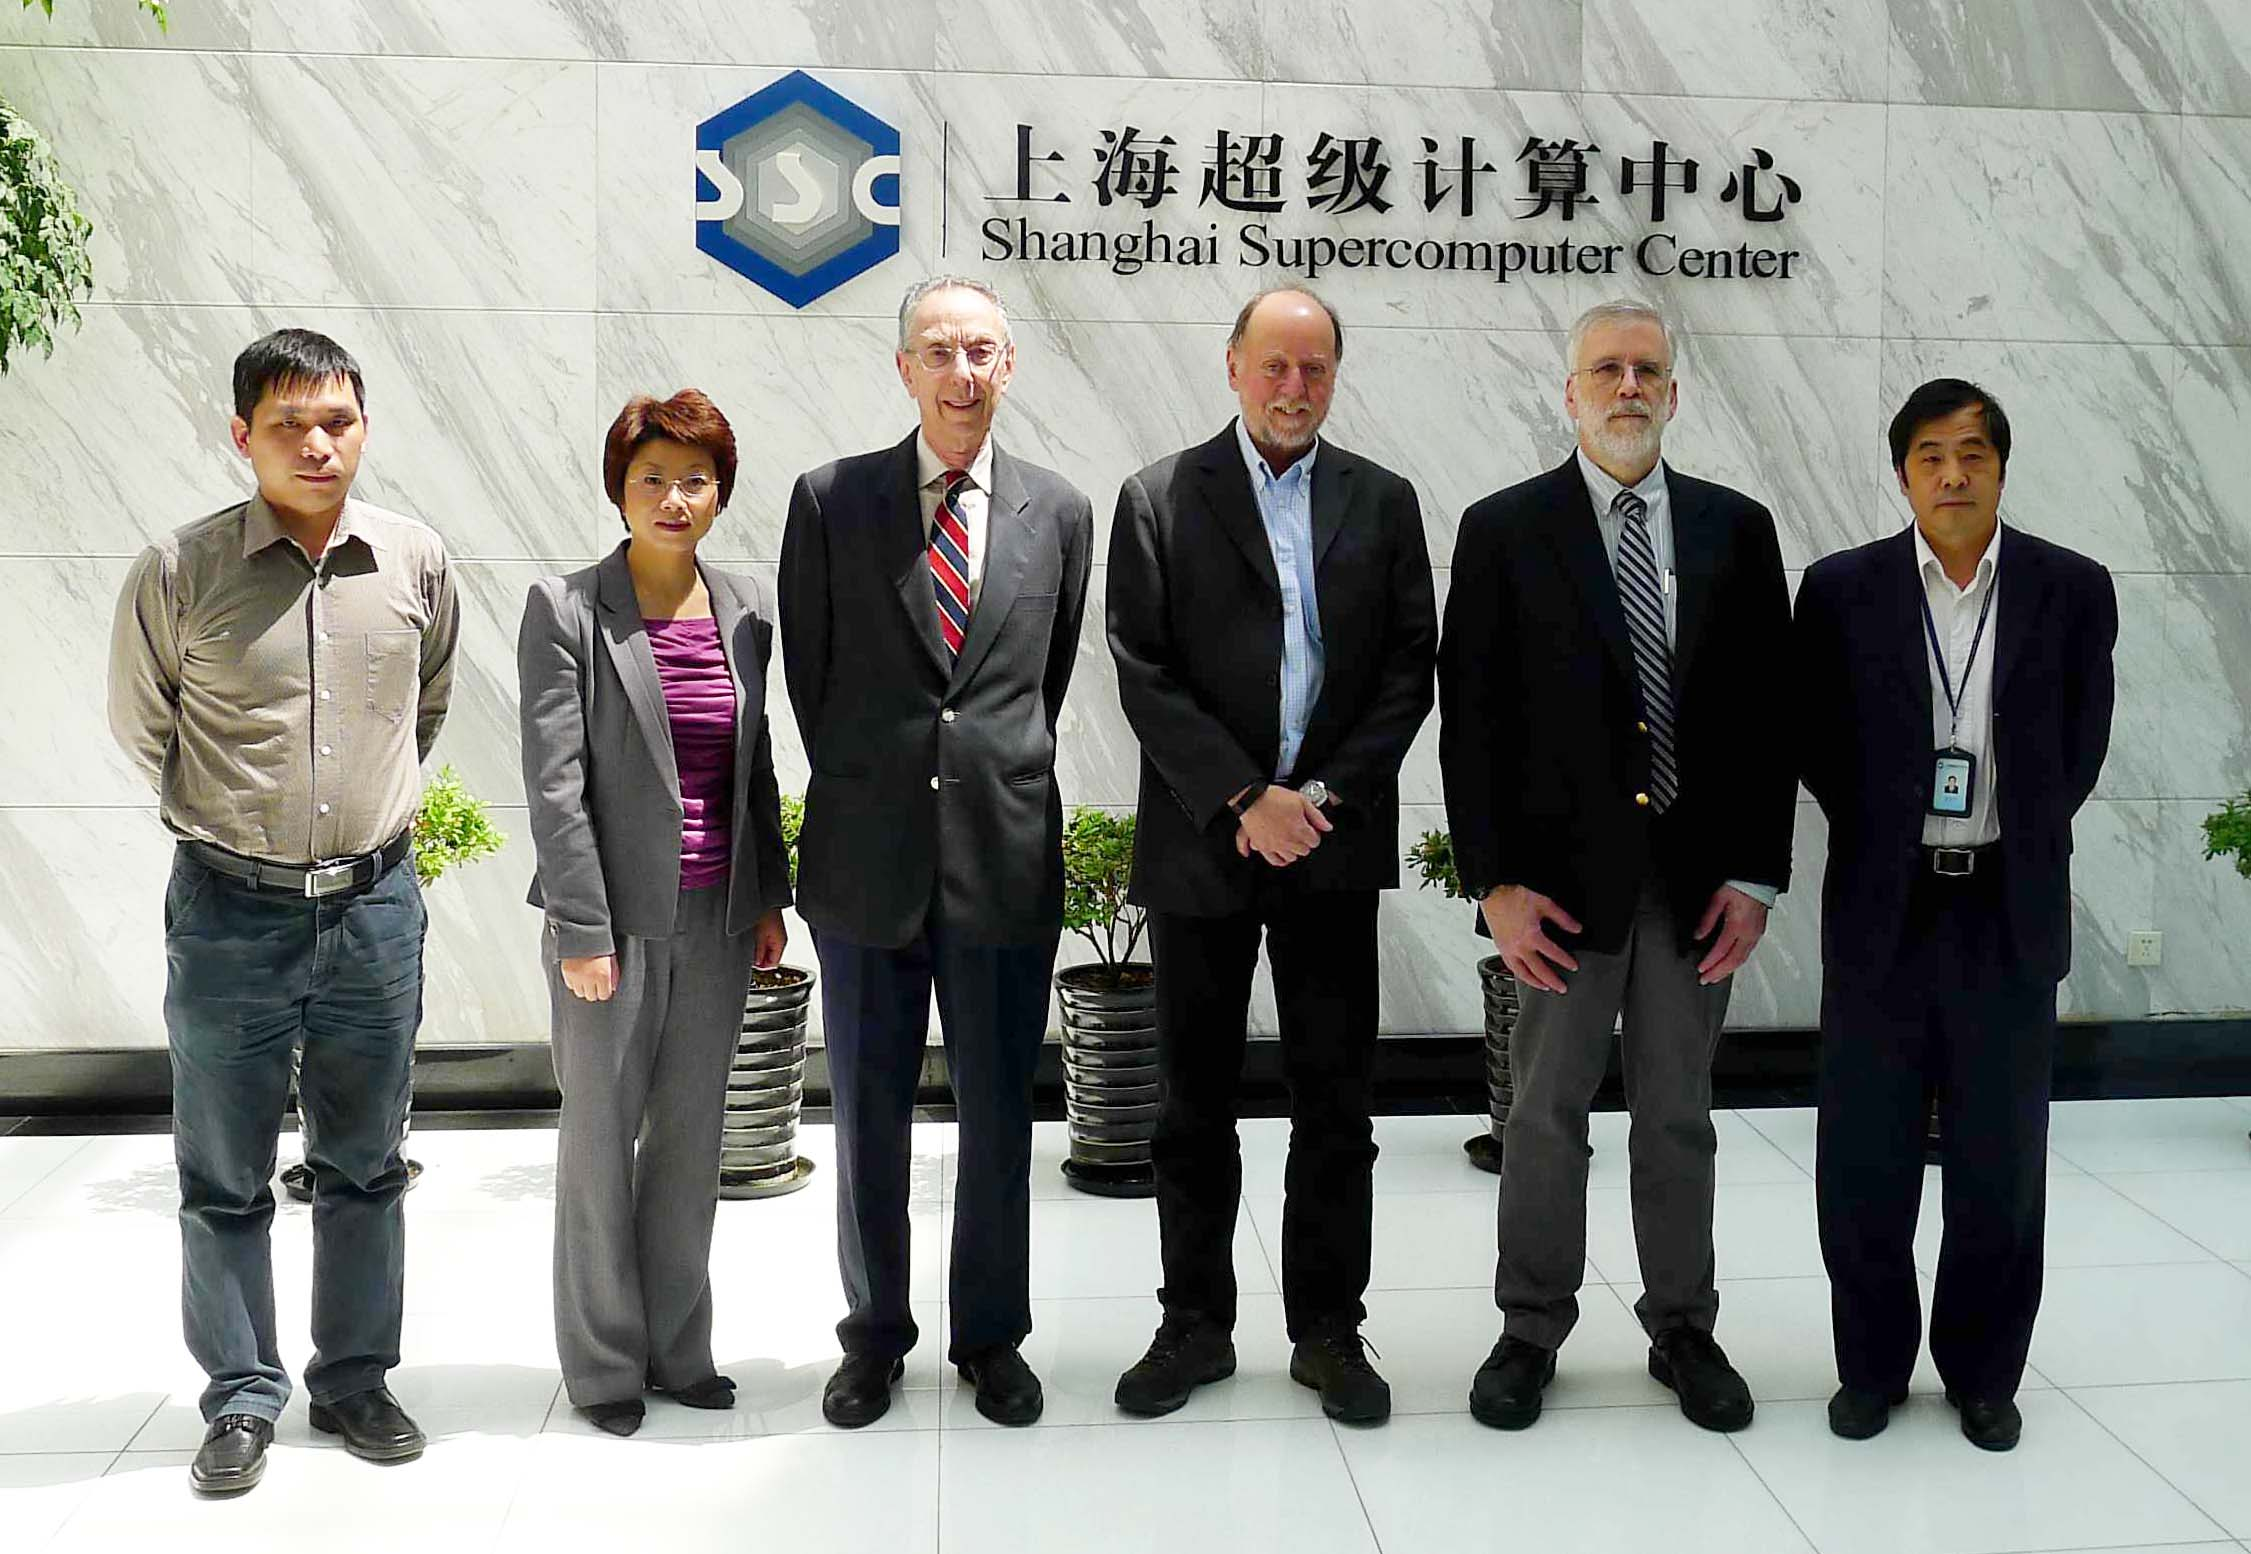 ATIP visits Shanghai Supercomputing Center (SSC) in May 2014